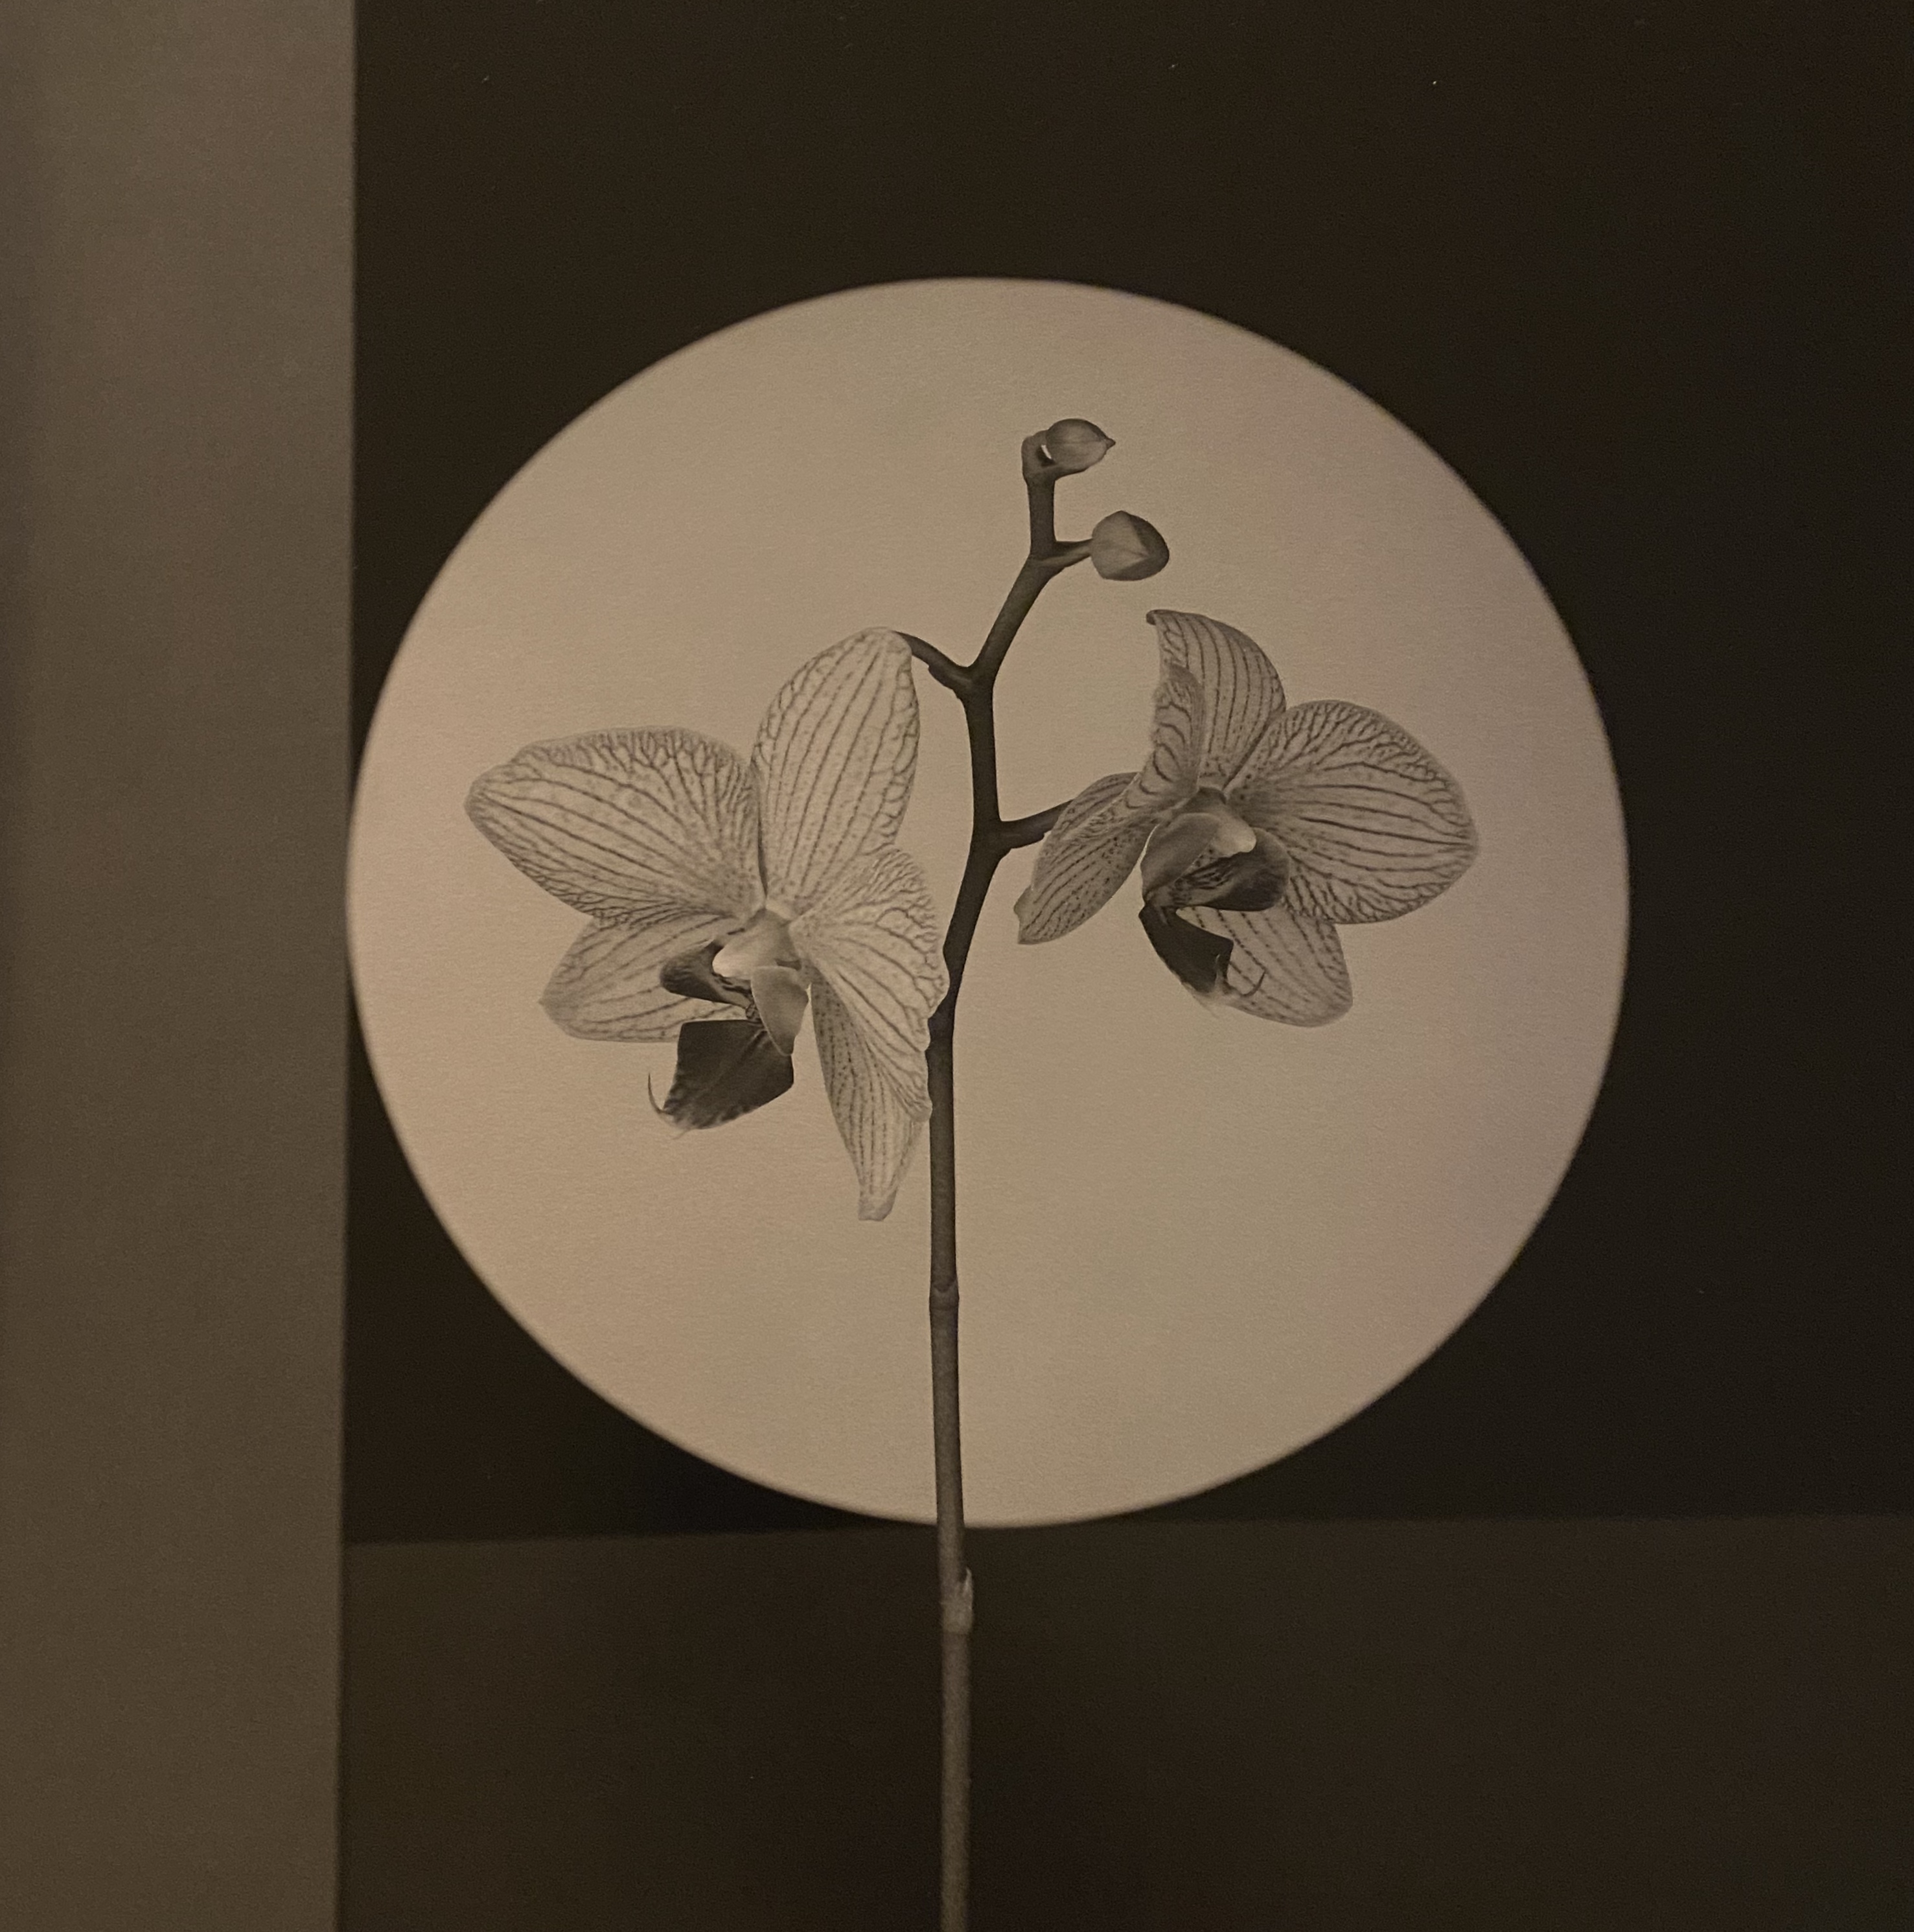 Two orchids on a geometric backdrop